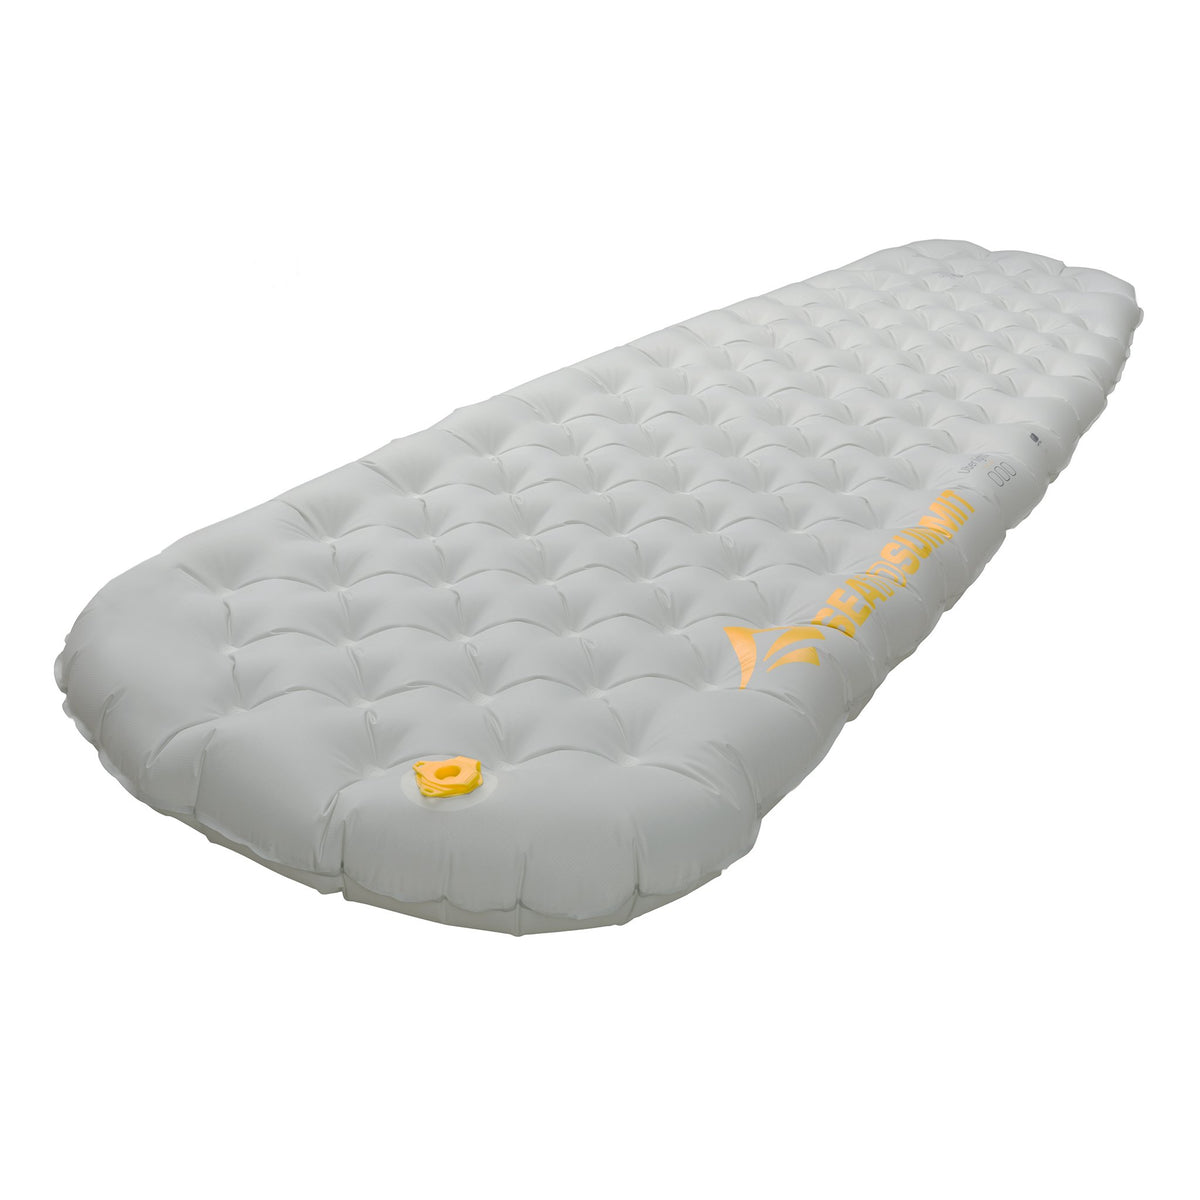 Sea to Summit Ether Light XT Air Mat shown laid flat